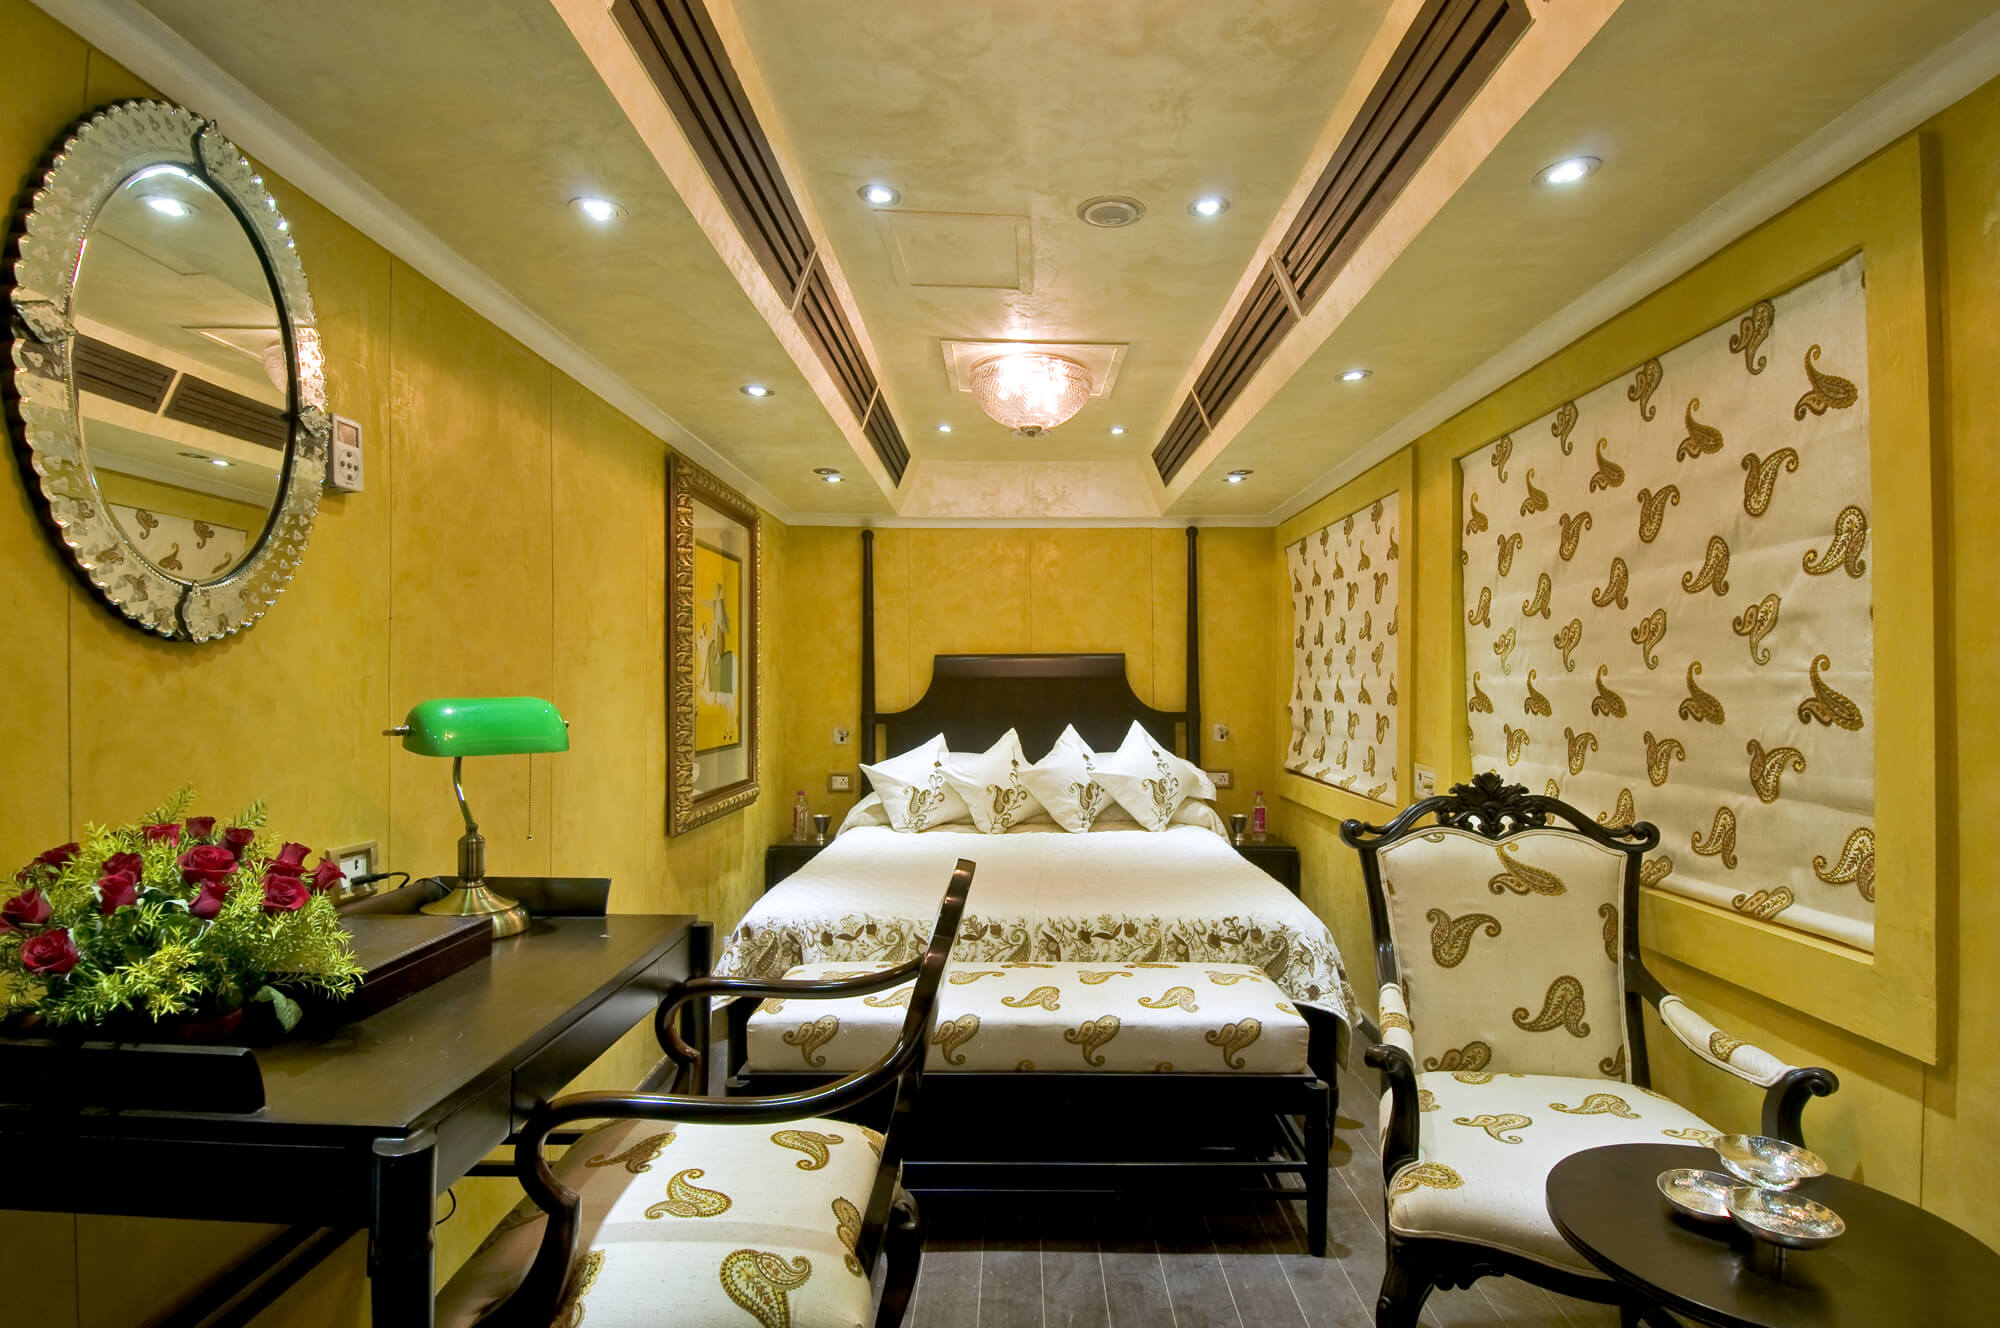 a luxurious coach with a bed and sofa on a luxurious train